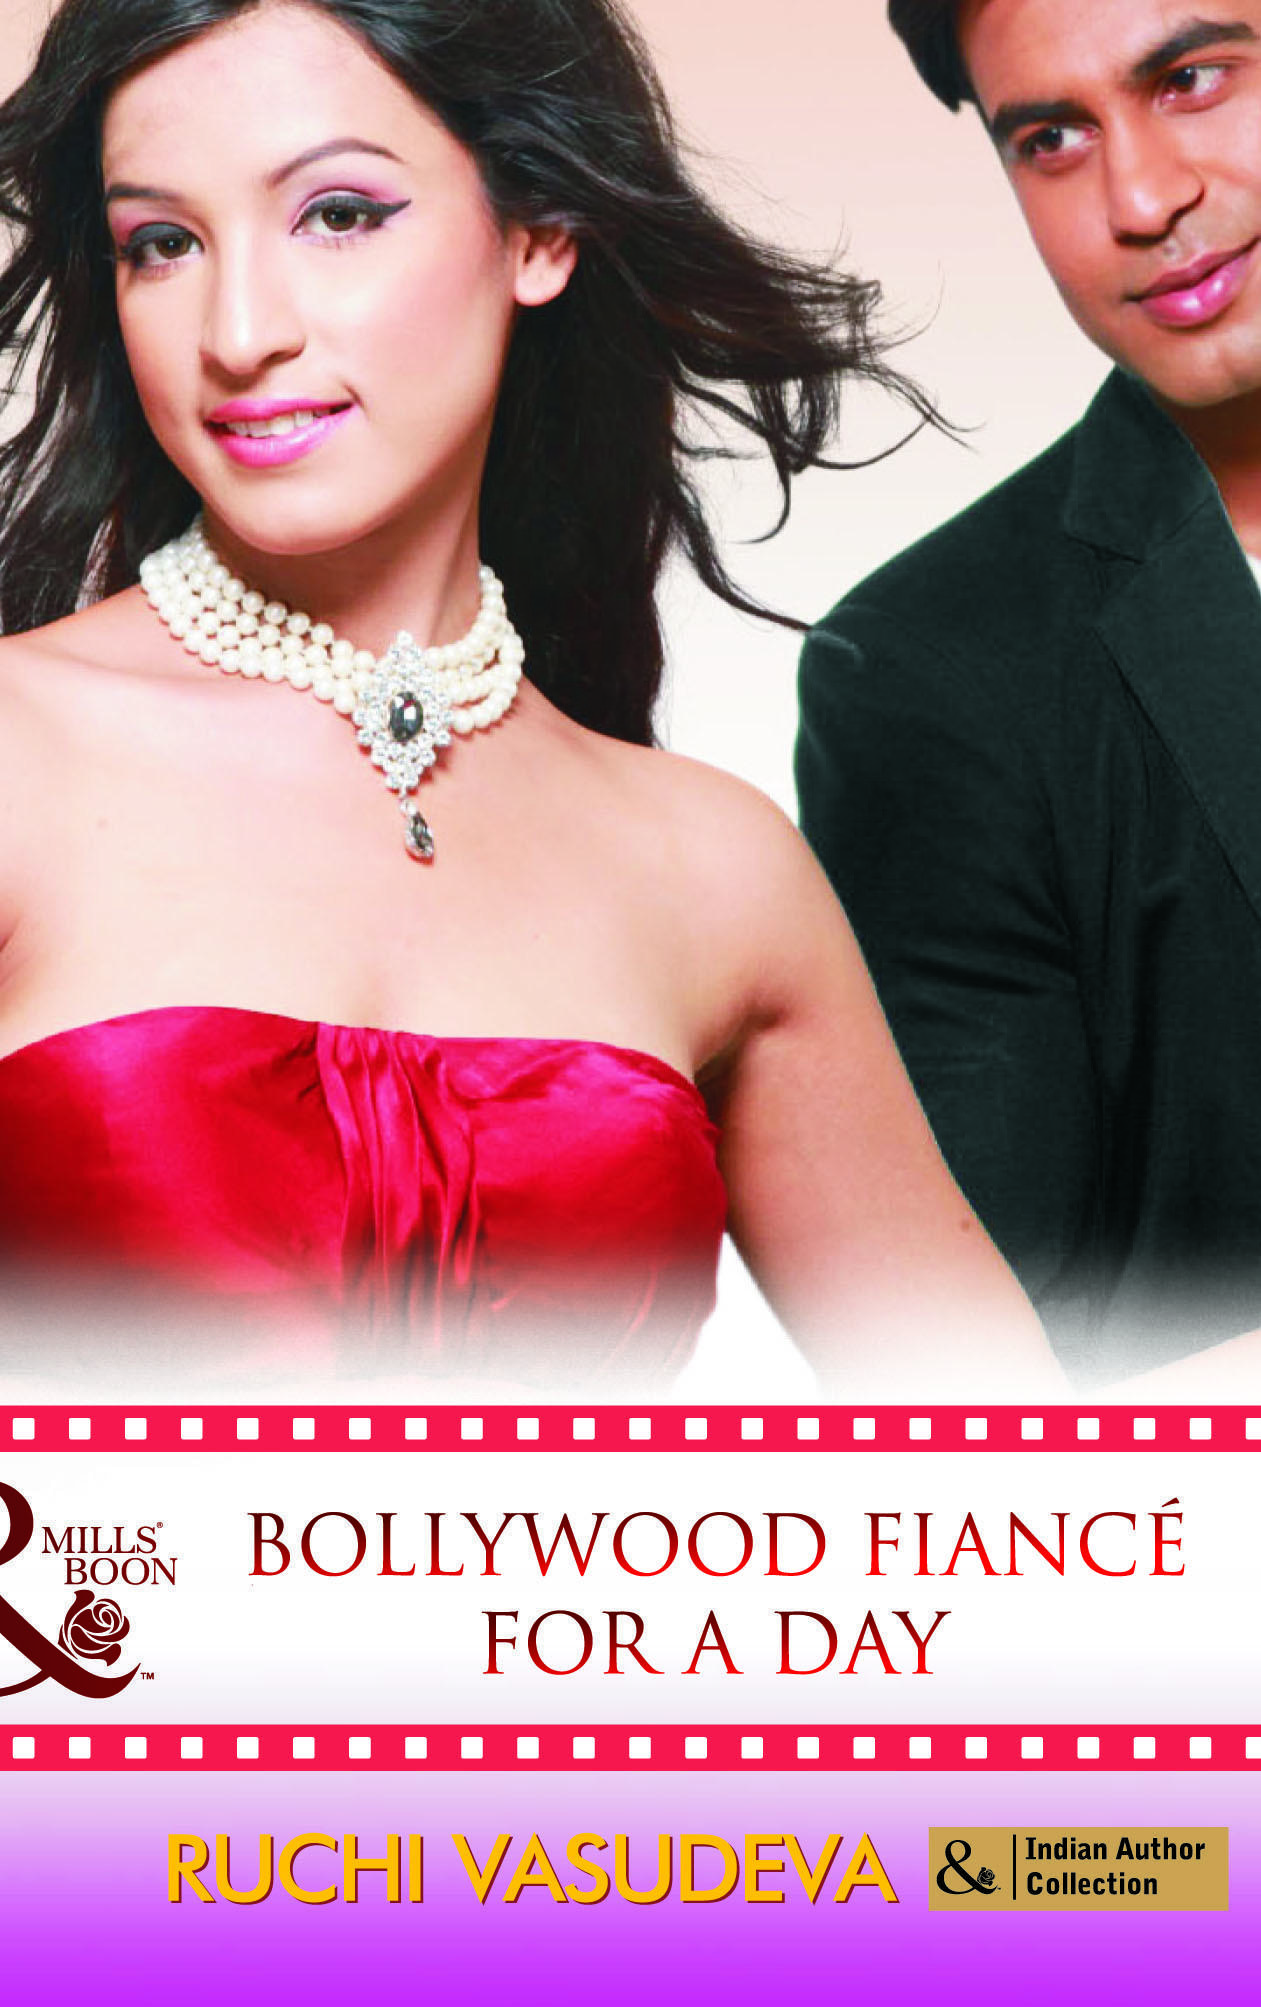 Bollywood Fiance' For A Day